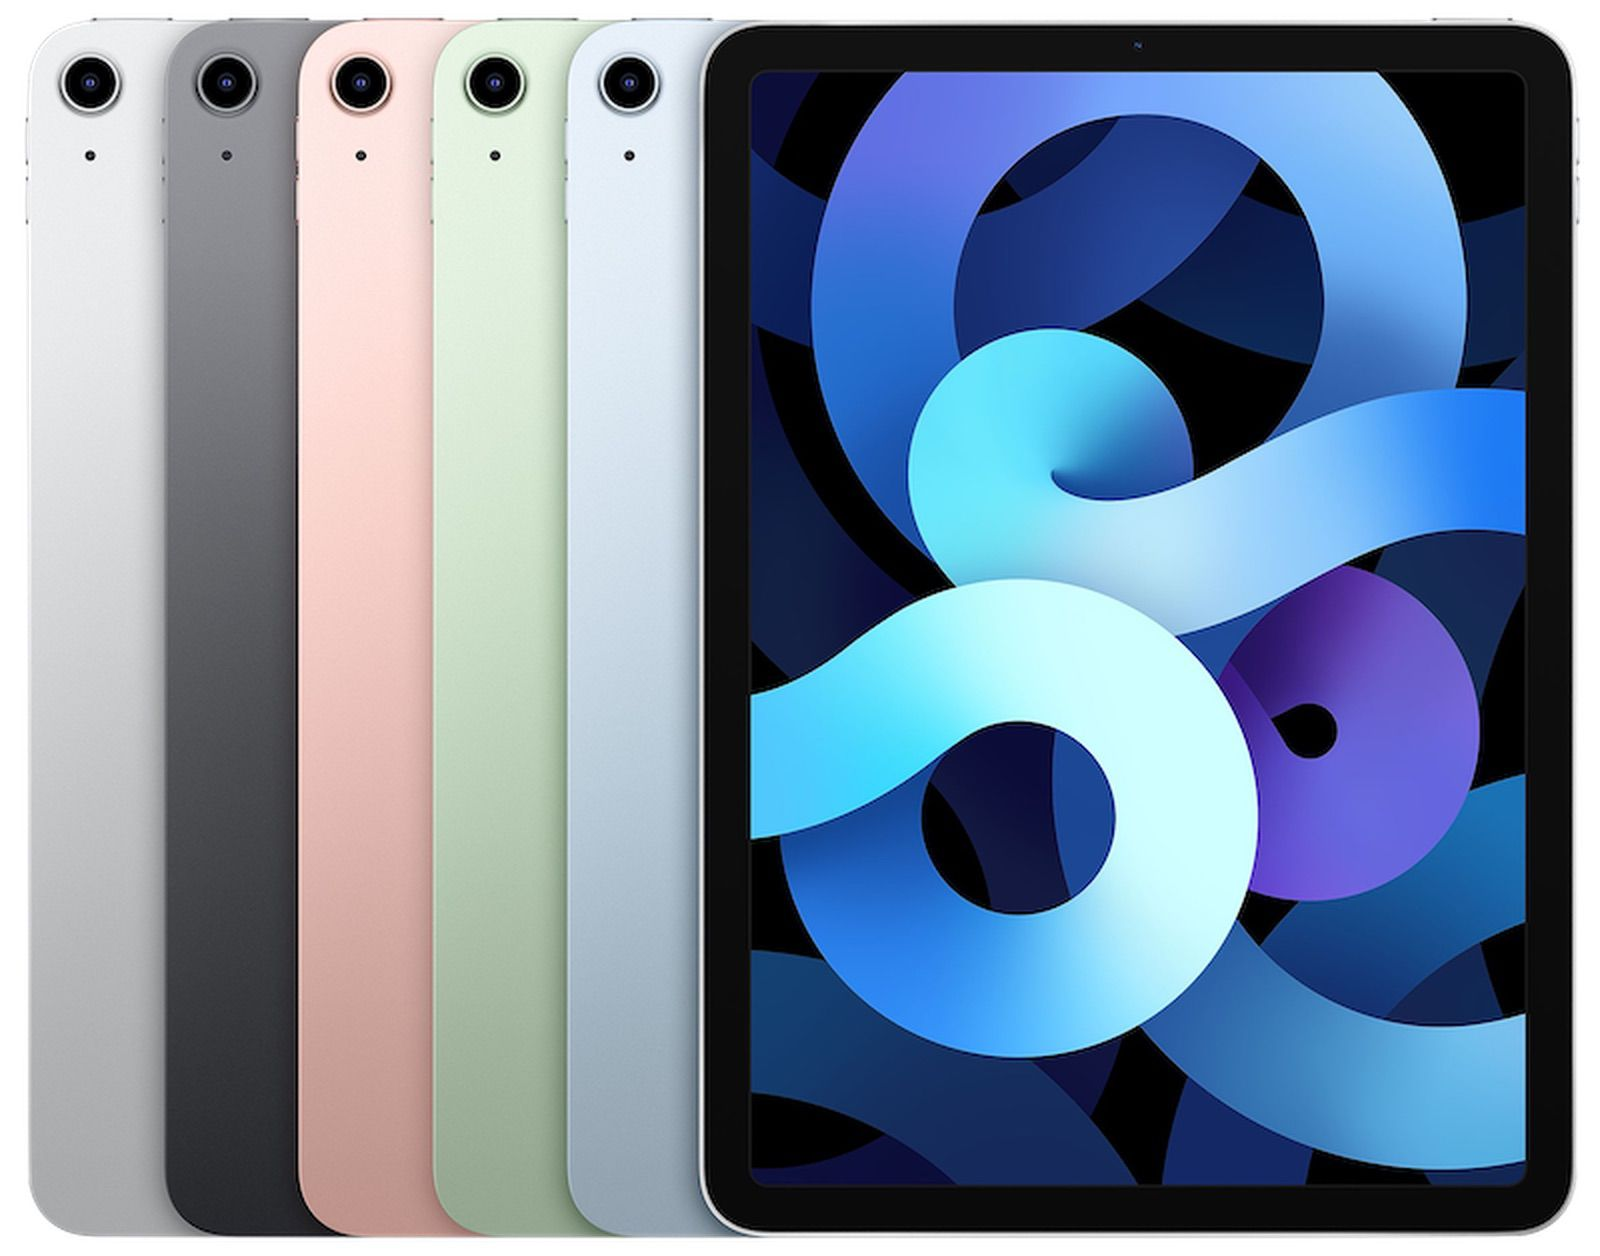 Apple's iPad Air 4 in a variety of colors